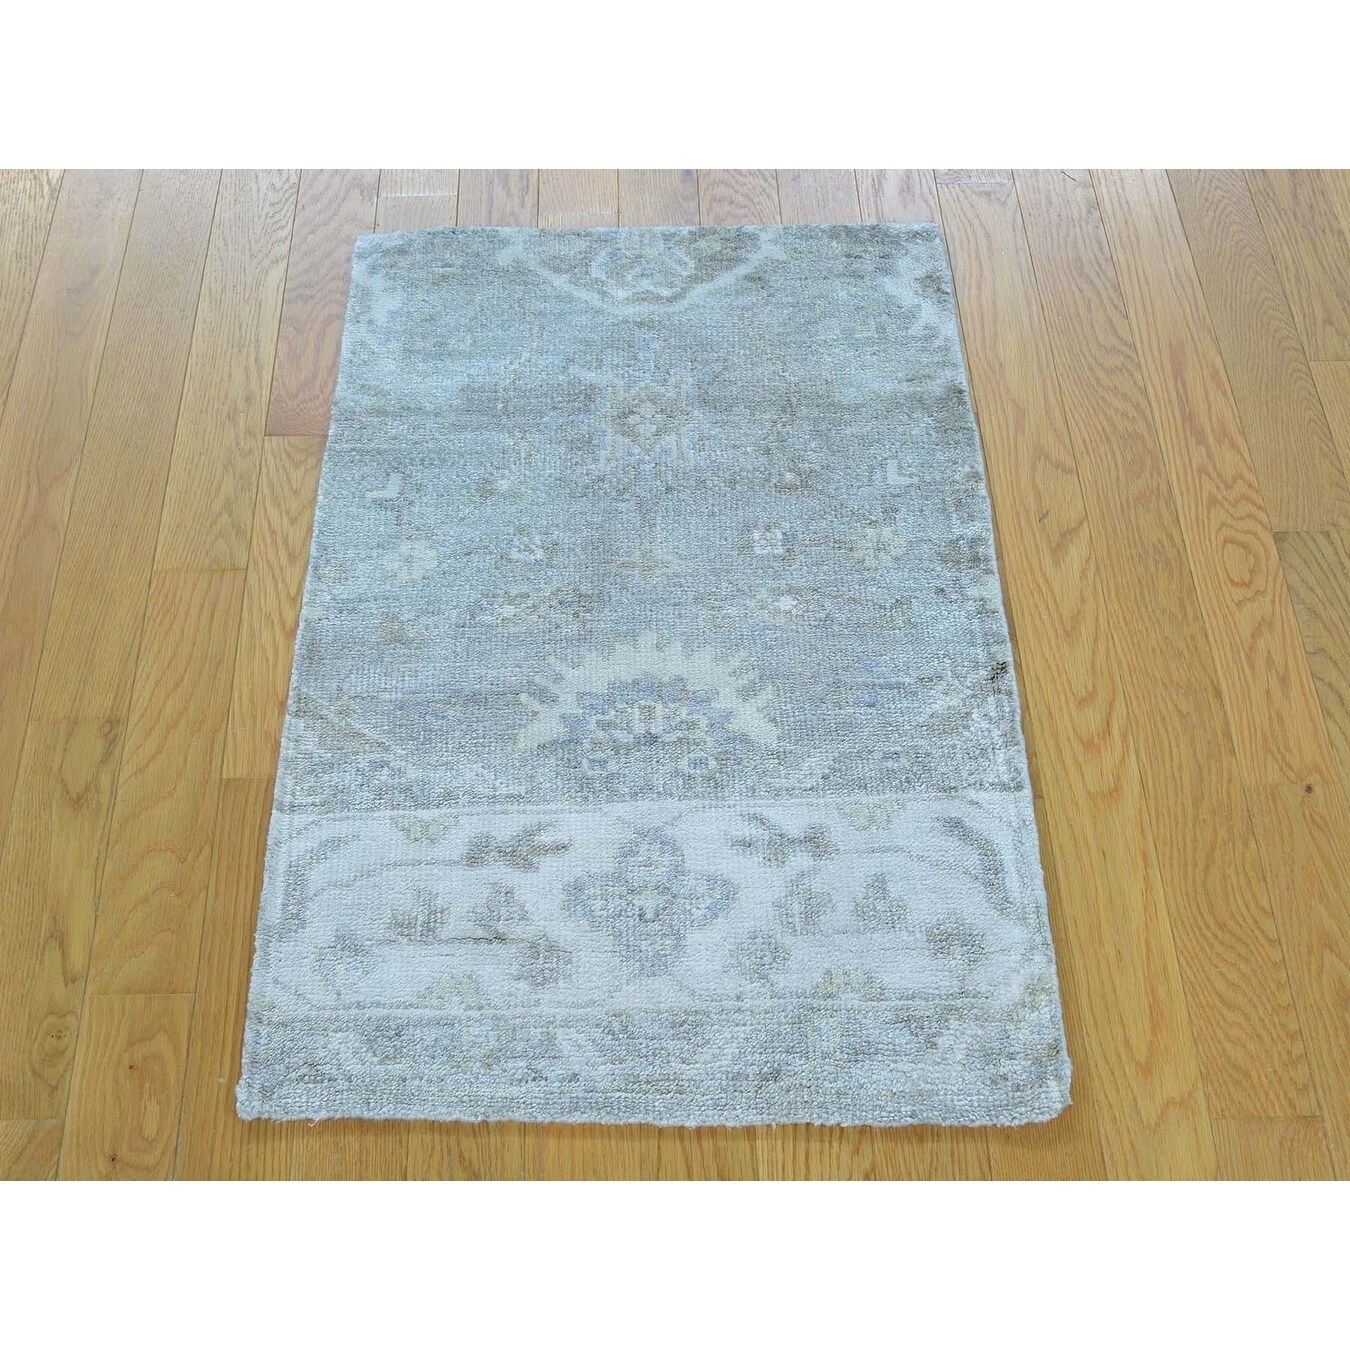 Hand Knotted Multicolored Oushak And Peshawar with Art Silk Oriental Rug - 2' x 3'